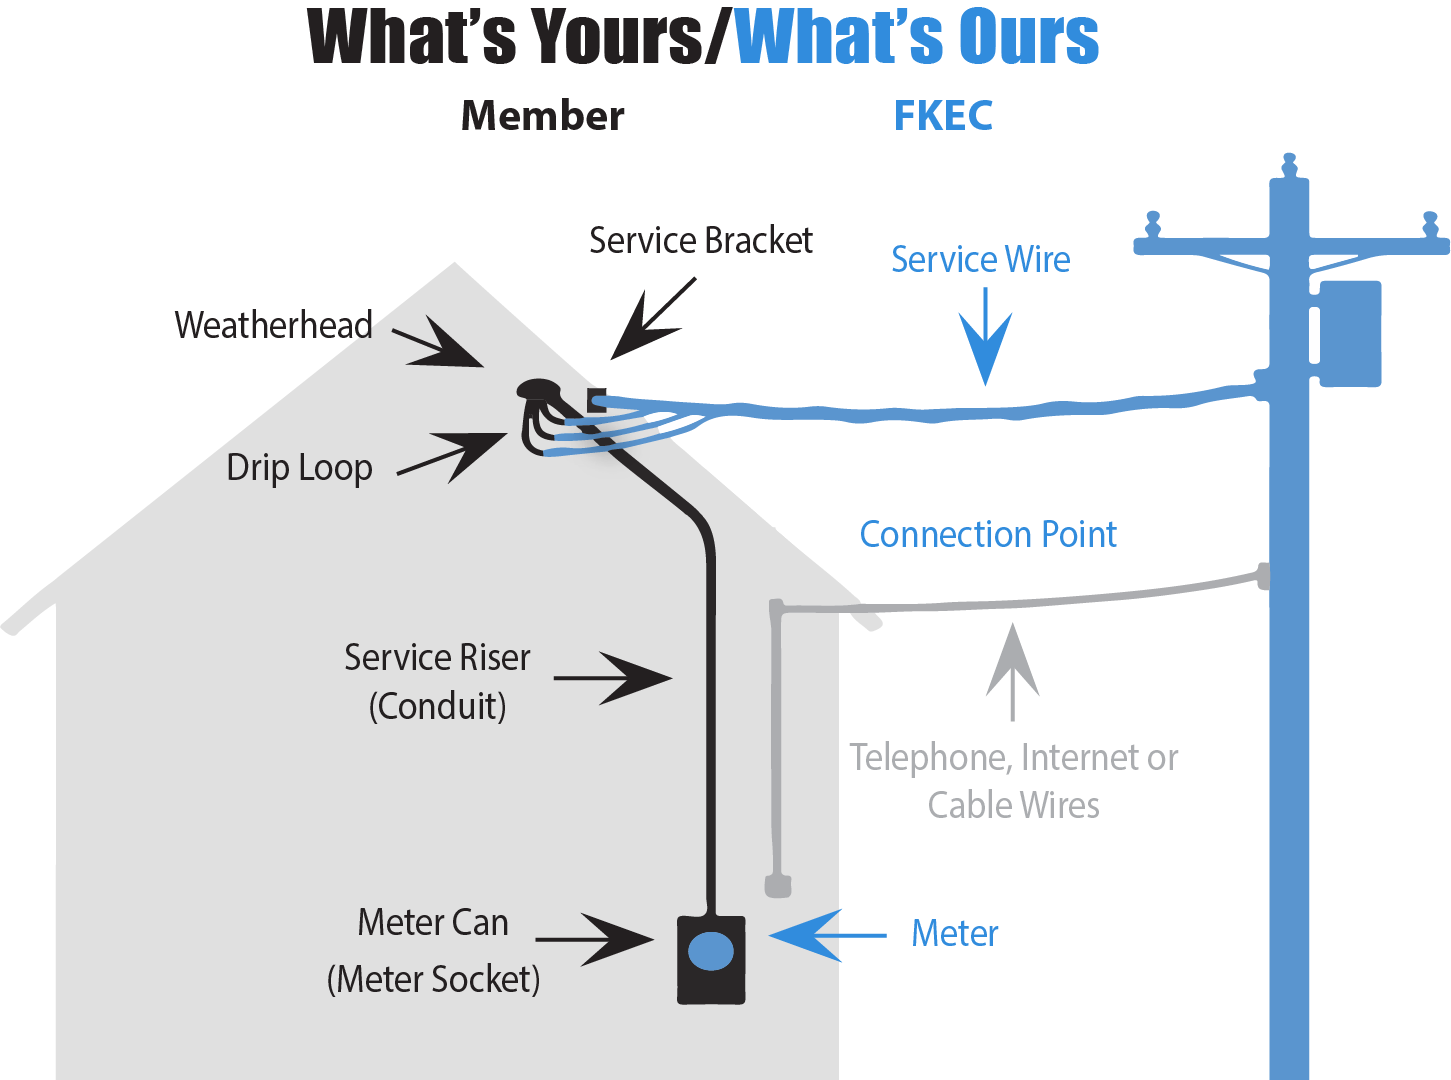 Detailed illustration. What's yours / what's ours. Yours: Weatherhead, Drip Loop, Service Bracket, Service Riser (Conduit), Meter Can (Meter Socket). Ours: Service Wire, Connection Point, Meter. Other: Telephone, Internet, or Cable Wires.